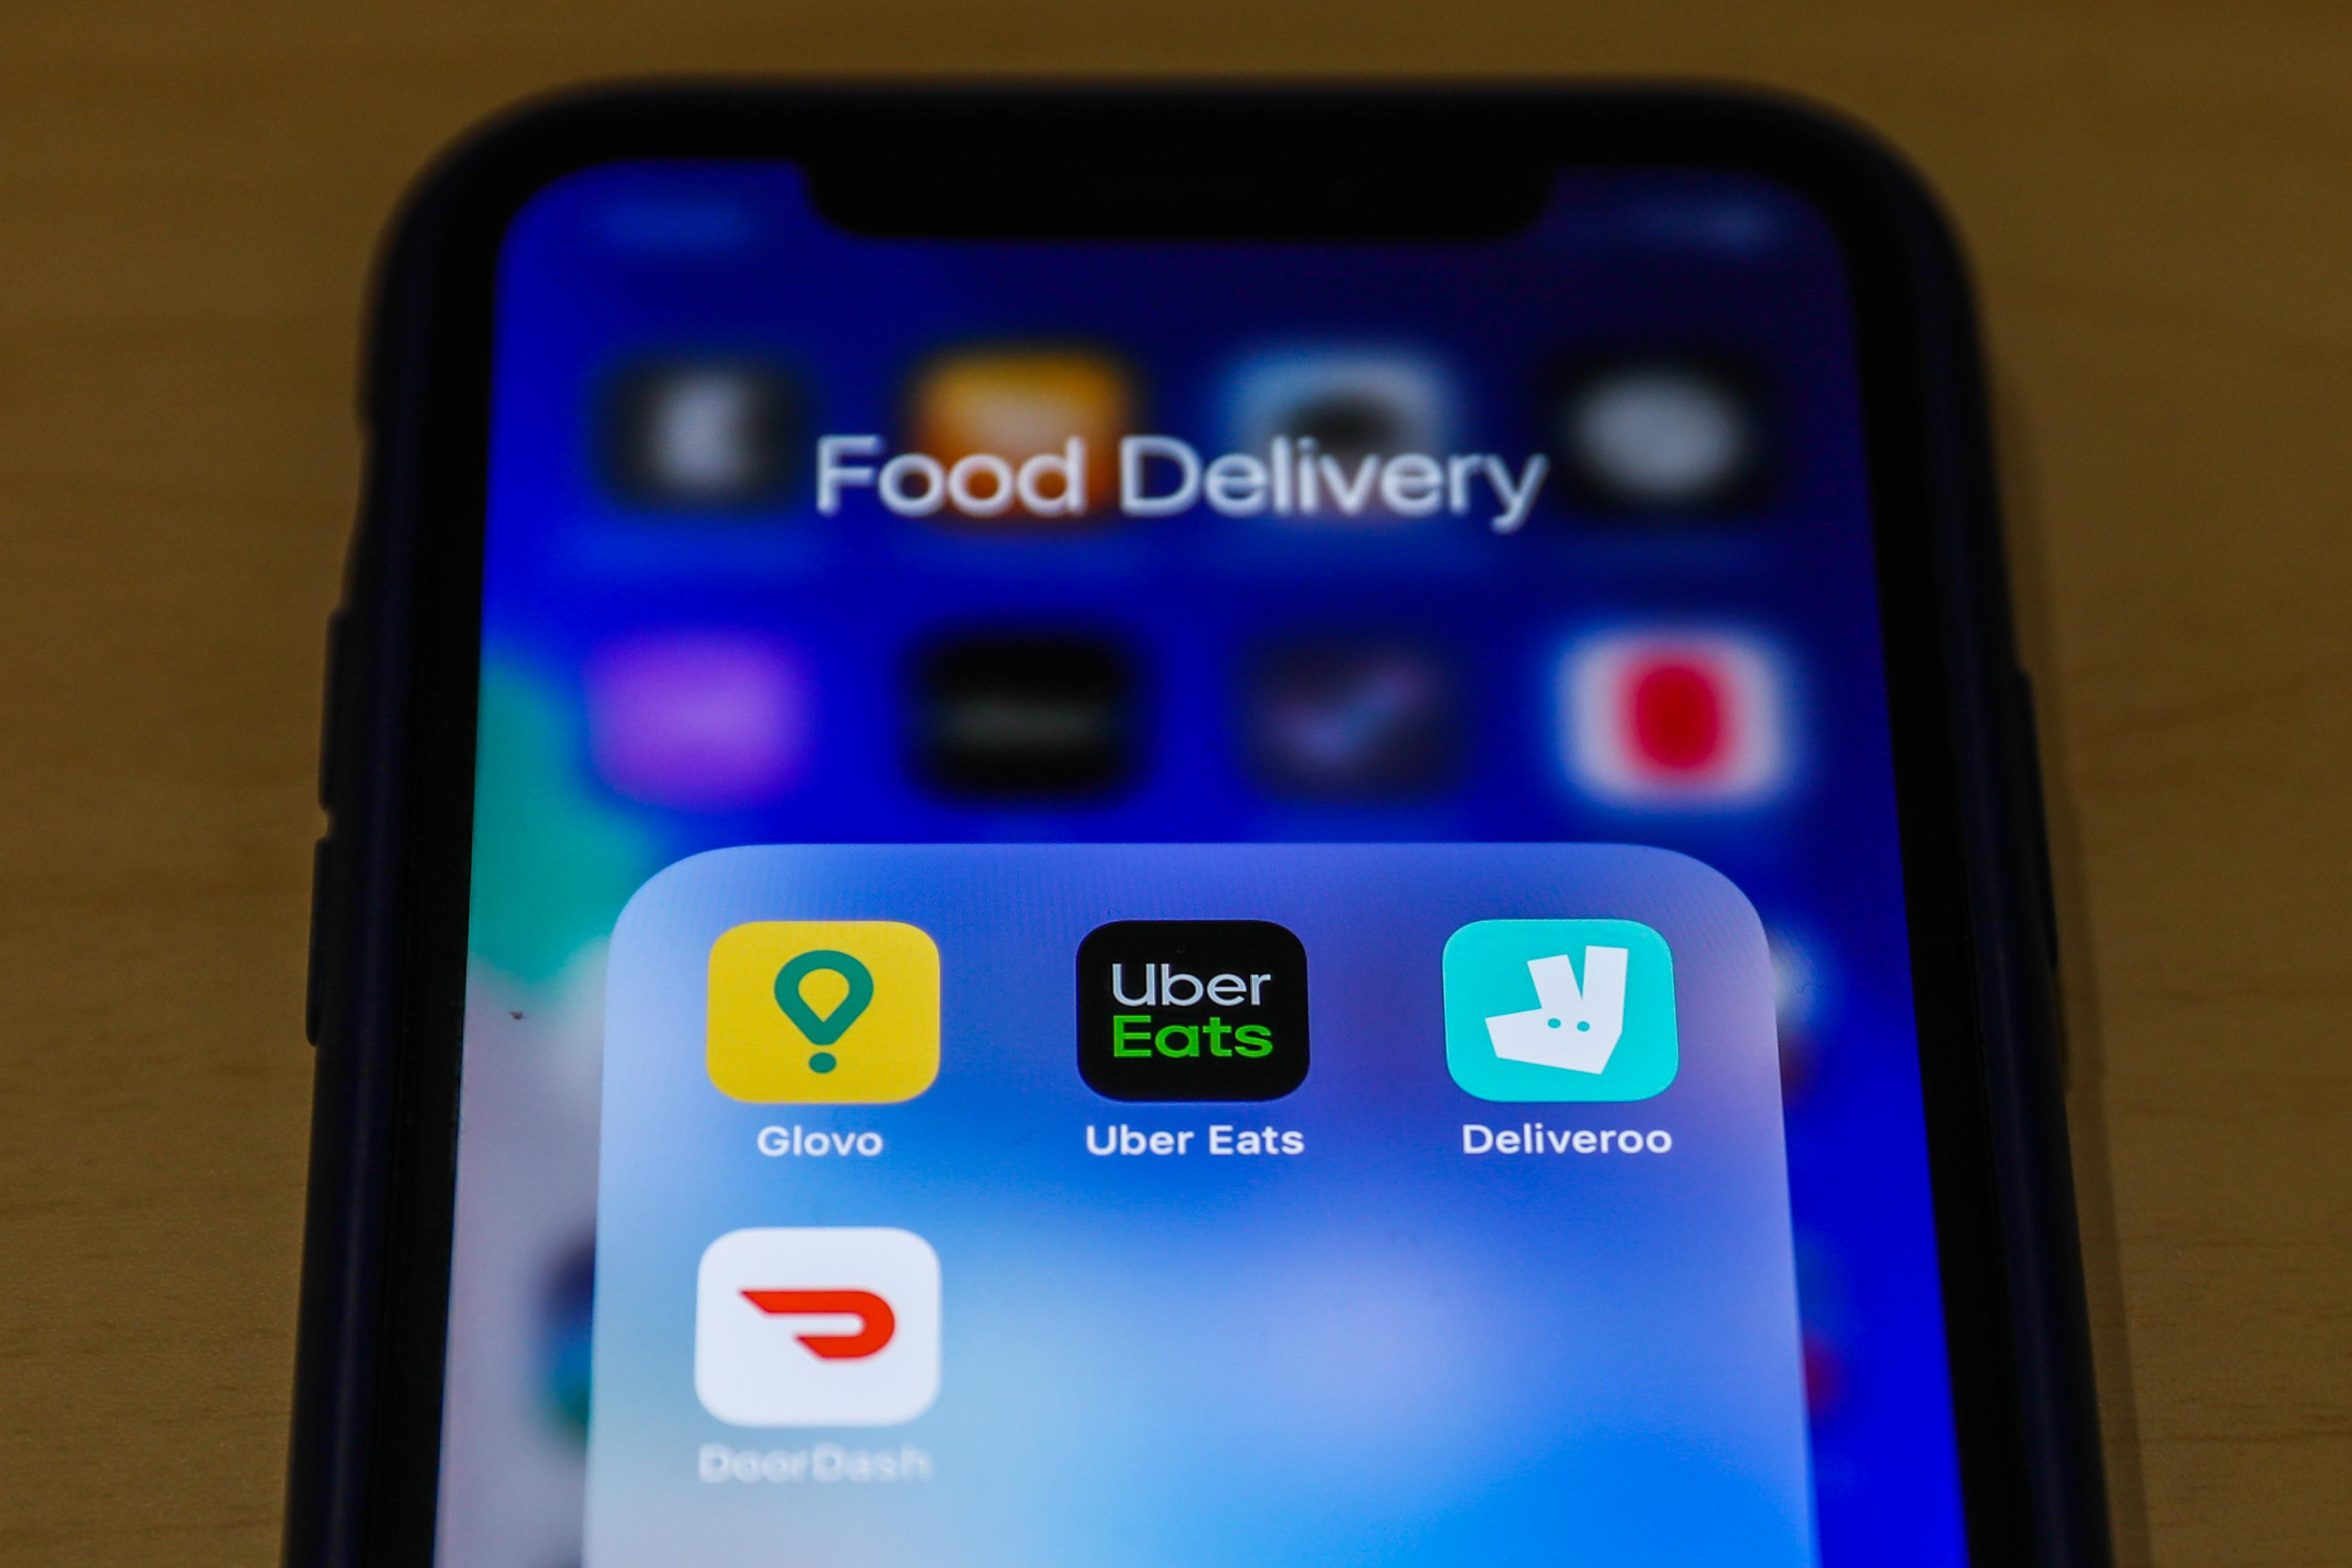 Sen. Warren calls on food delivery apps to reclassify workers, increase pay during pandemic